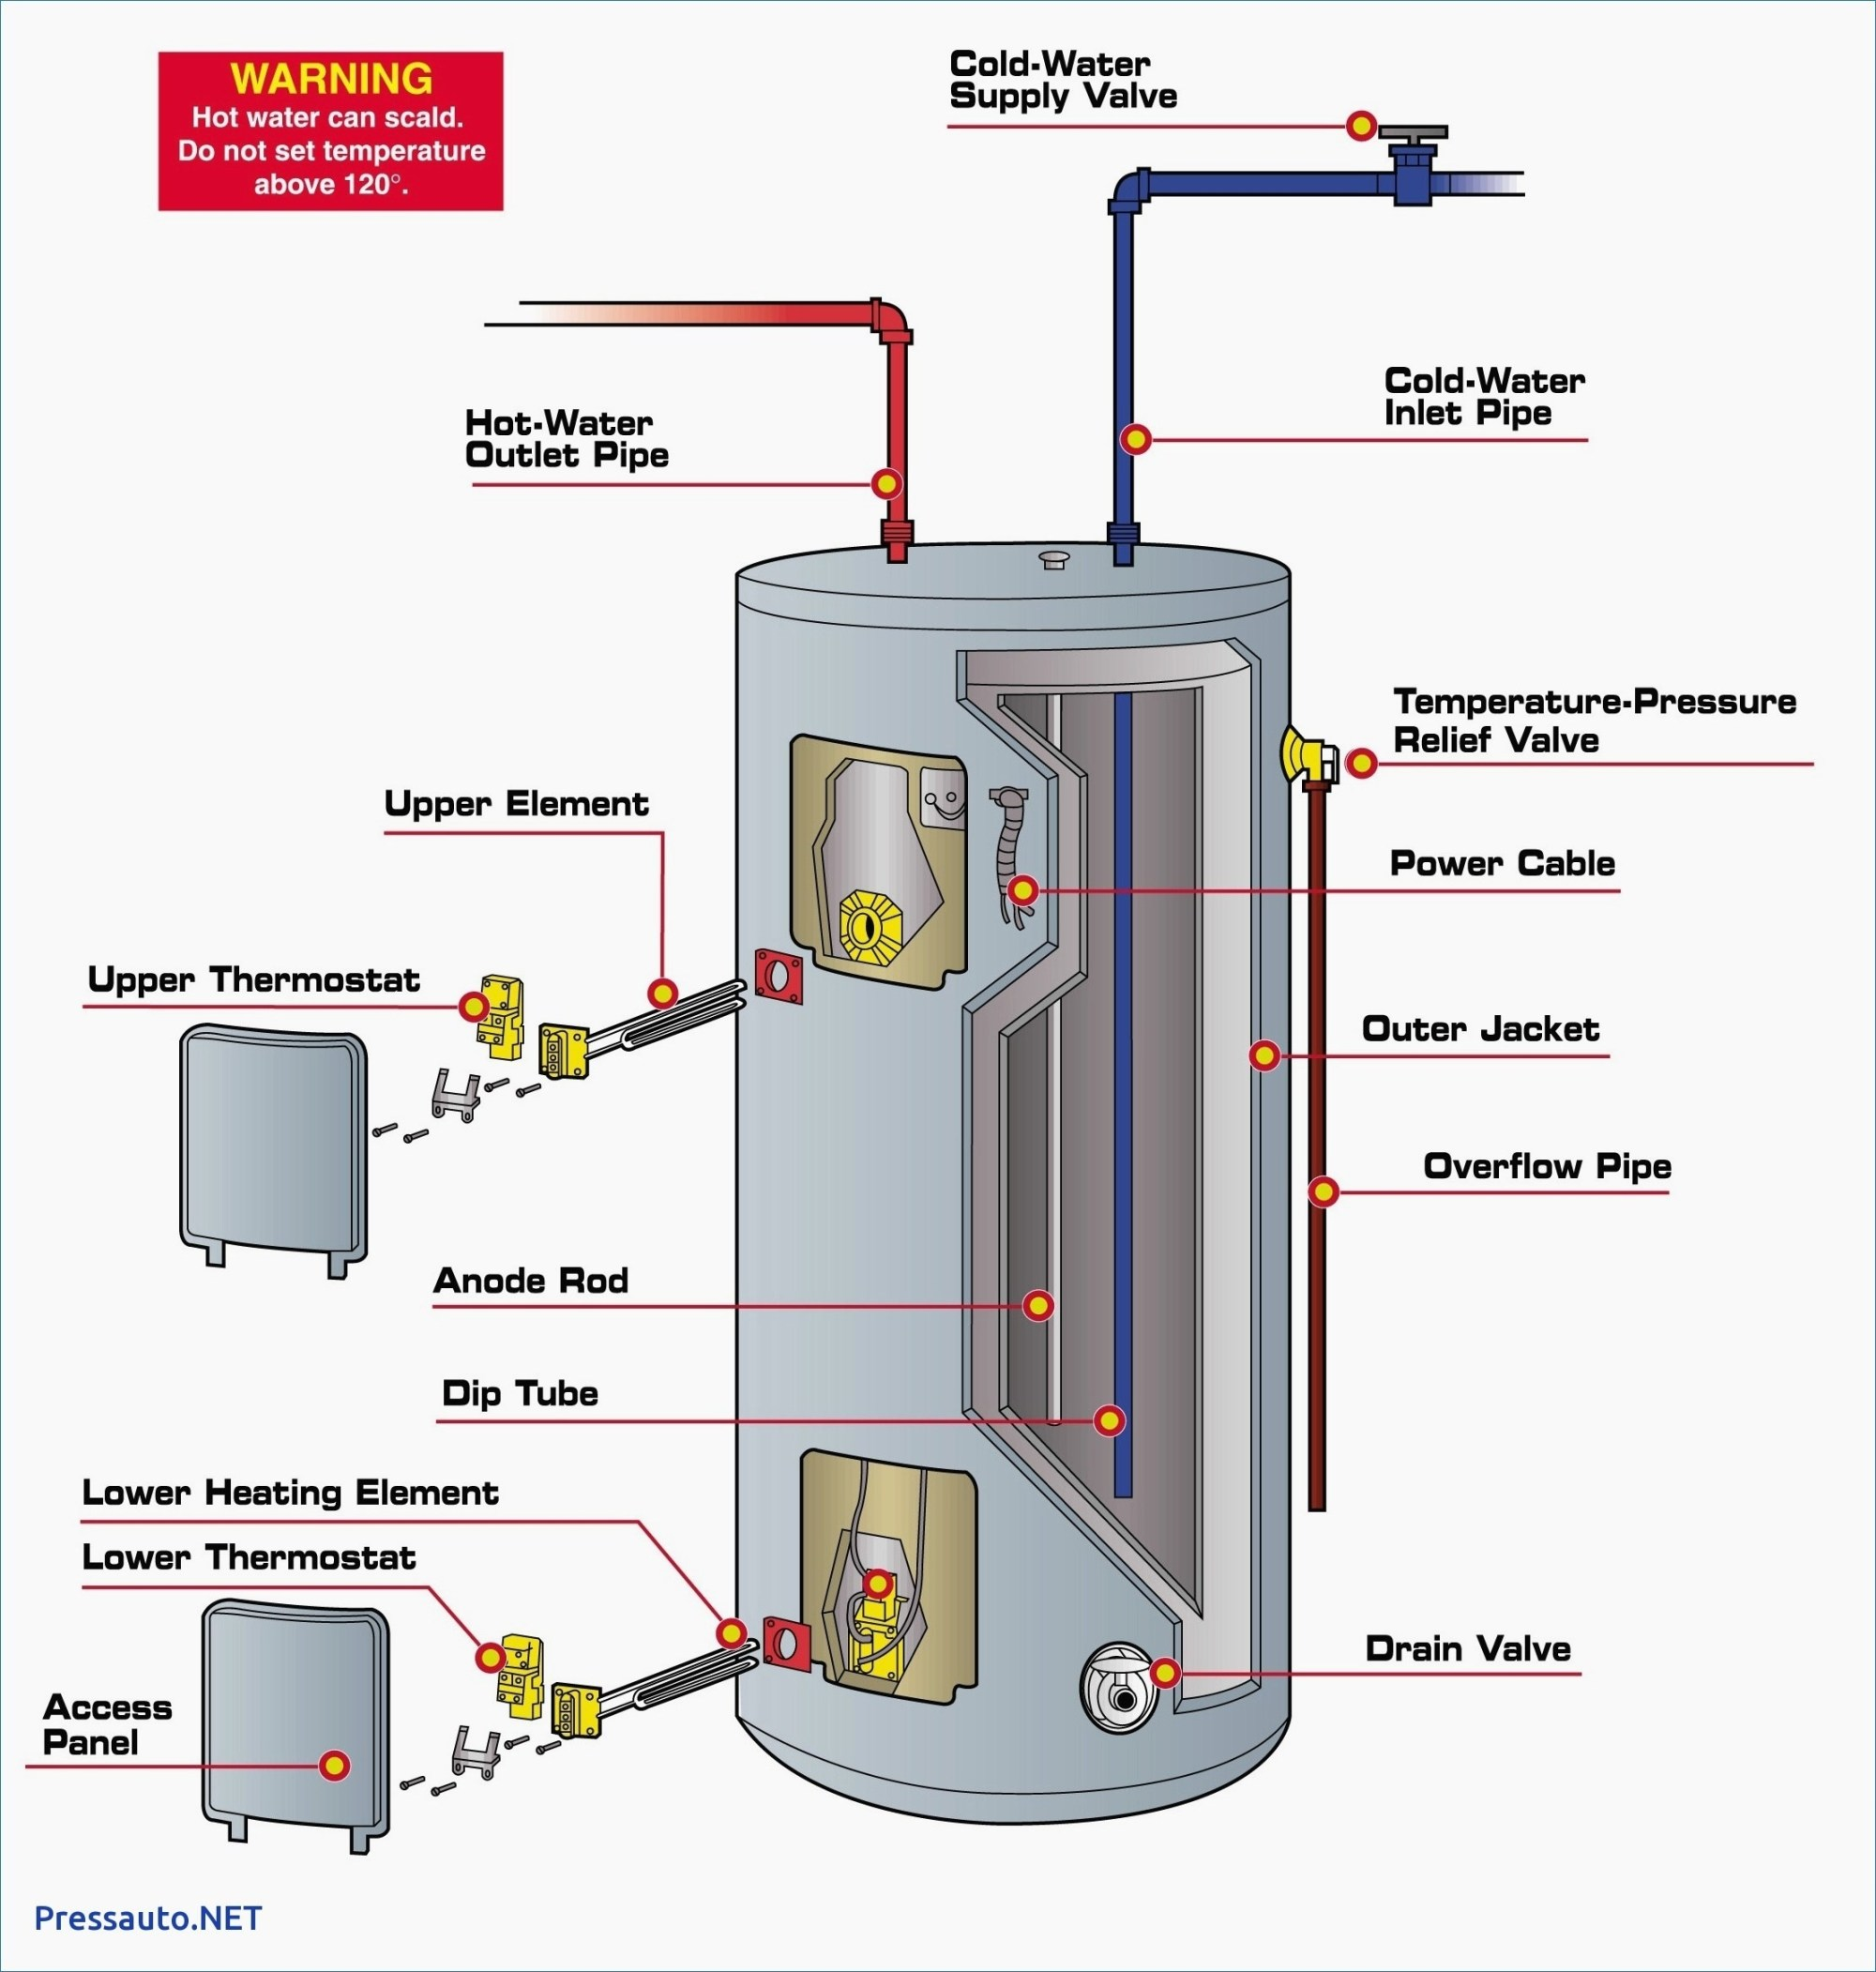 hight resolution of wiring a hot water heater diagram get free image about wiring wiring 220v breaker panel diagram furthermore hydronic radiant floor